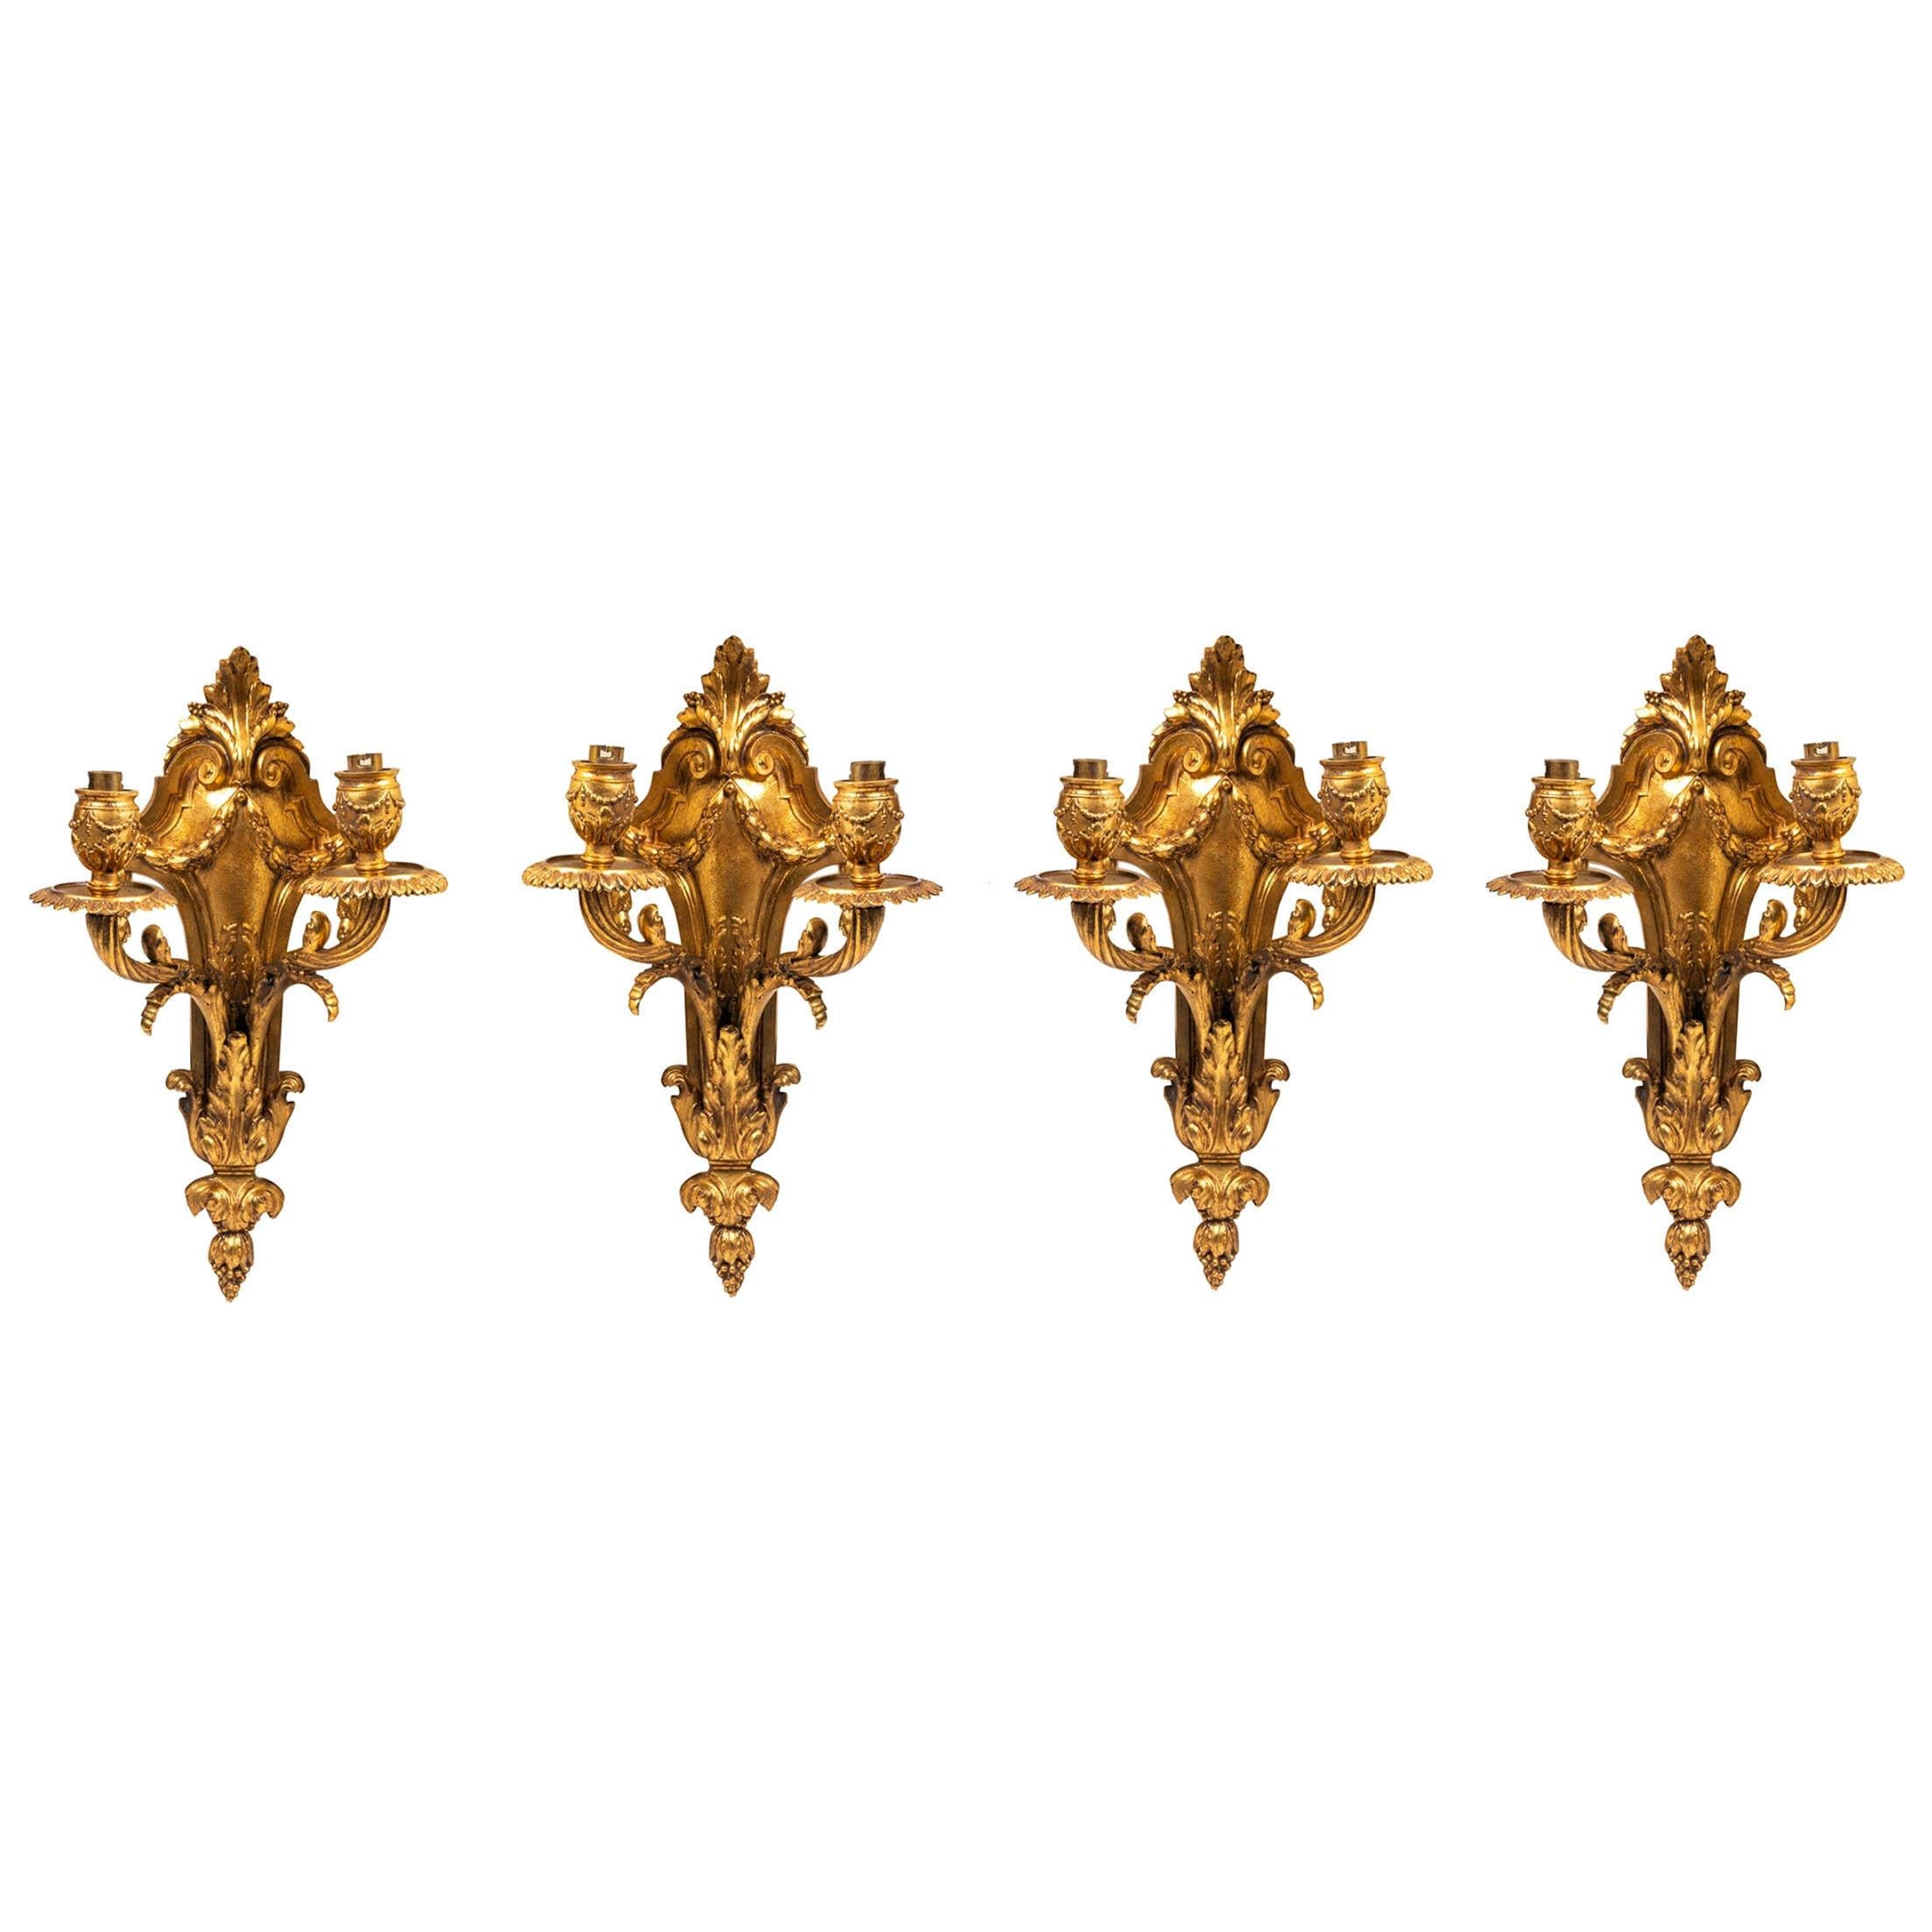 Four Classical Gilded Bronze Wall Lights, 19th Century